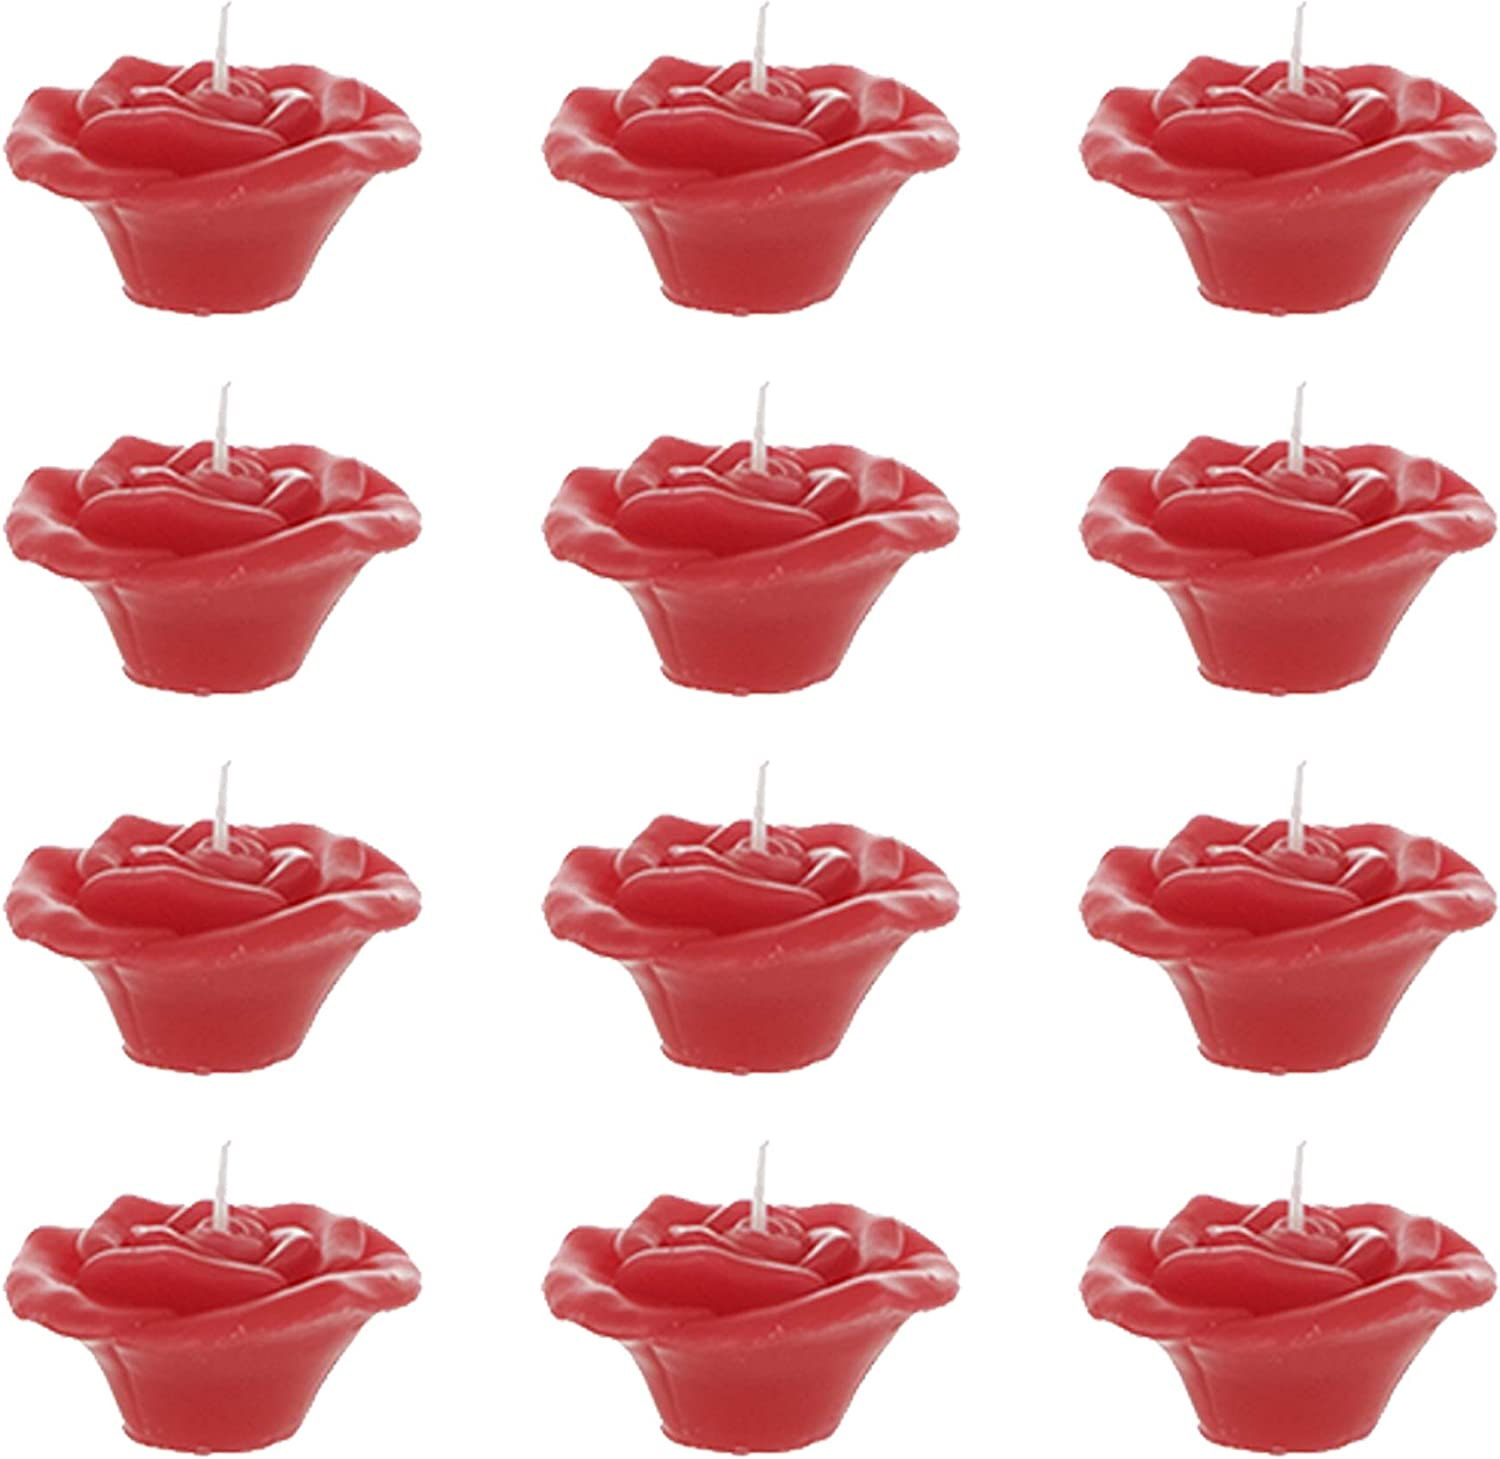 Home D/écor Mega Candles 12 pcs Unscented Red Floating Rose Petals Flower Candle Celebrations /& More Baby Showers Hand Poured Wax Candles 1.5 Inch Diameter Wedding Receptions Birthdays